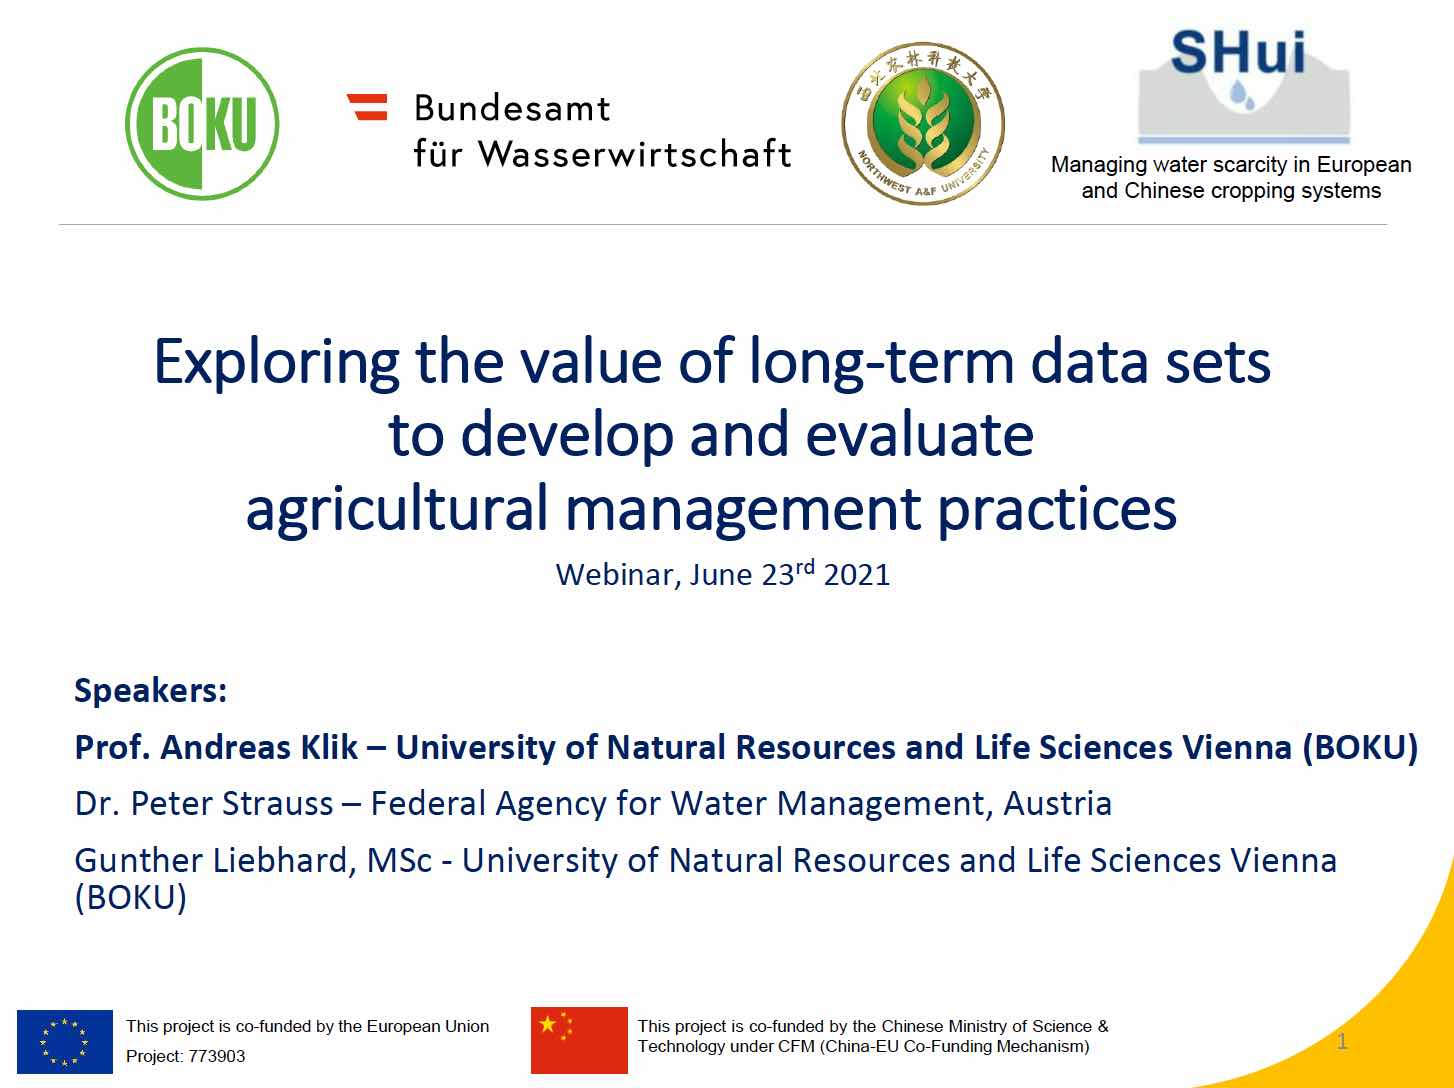 Exploring the value of long-term data sets to develop and evaluate agricultural management practices